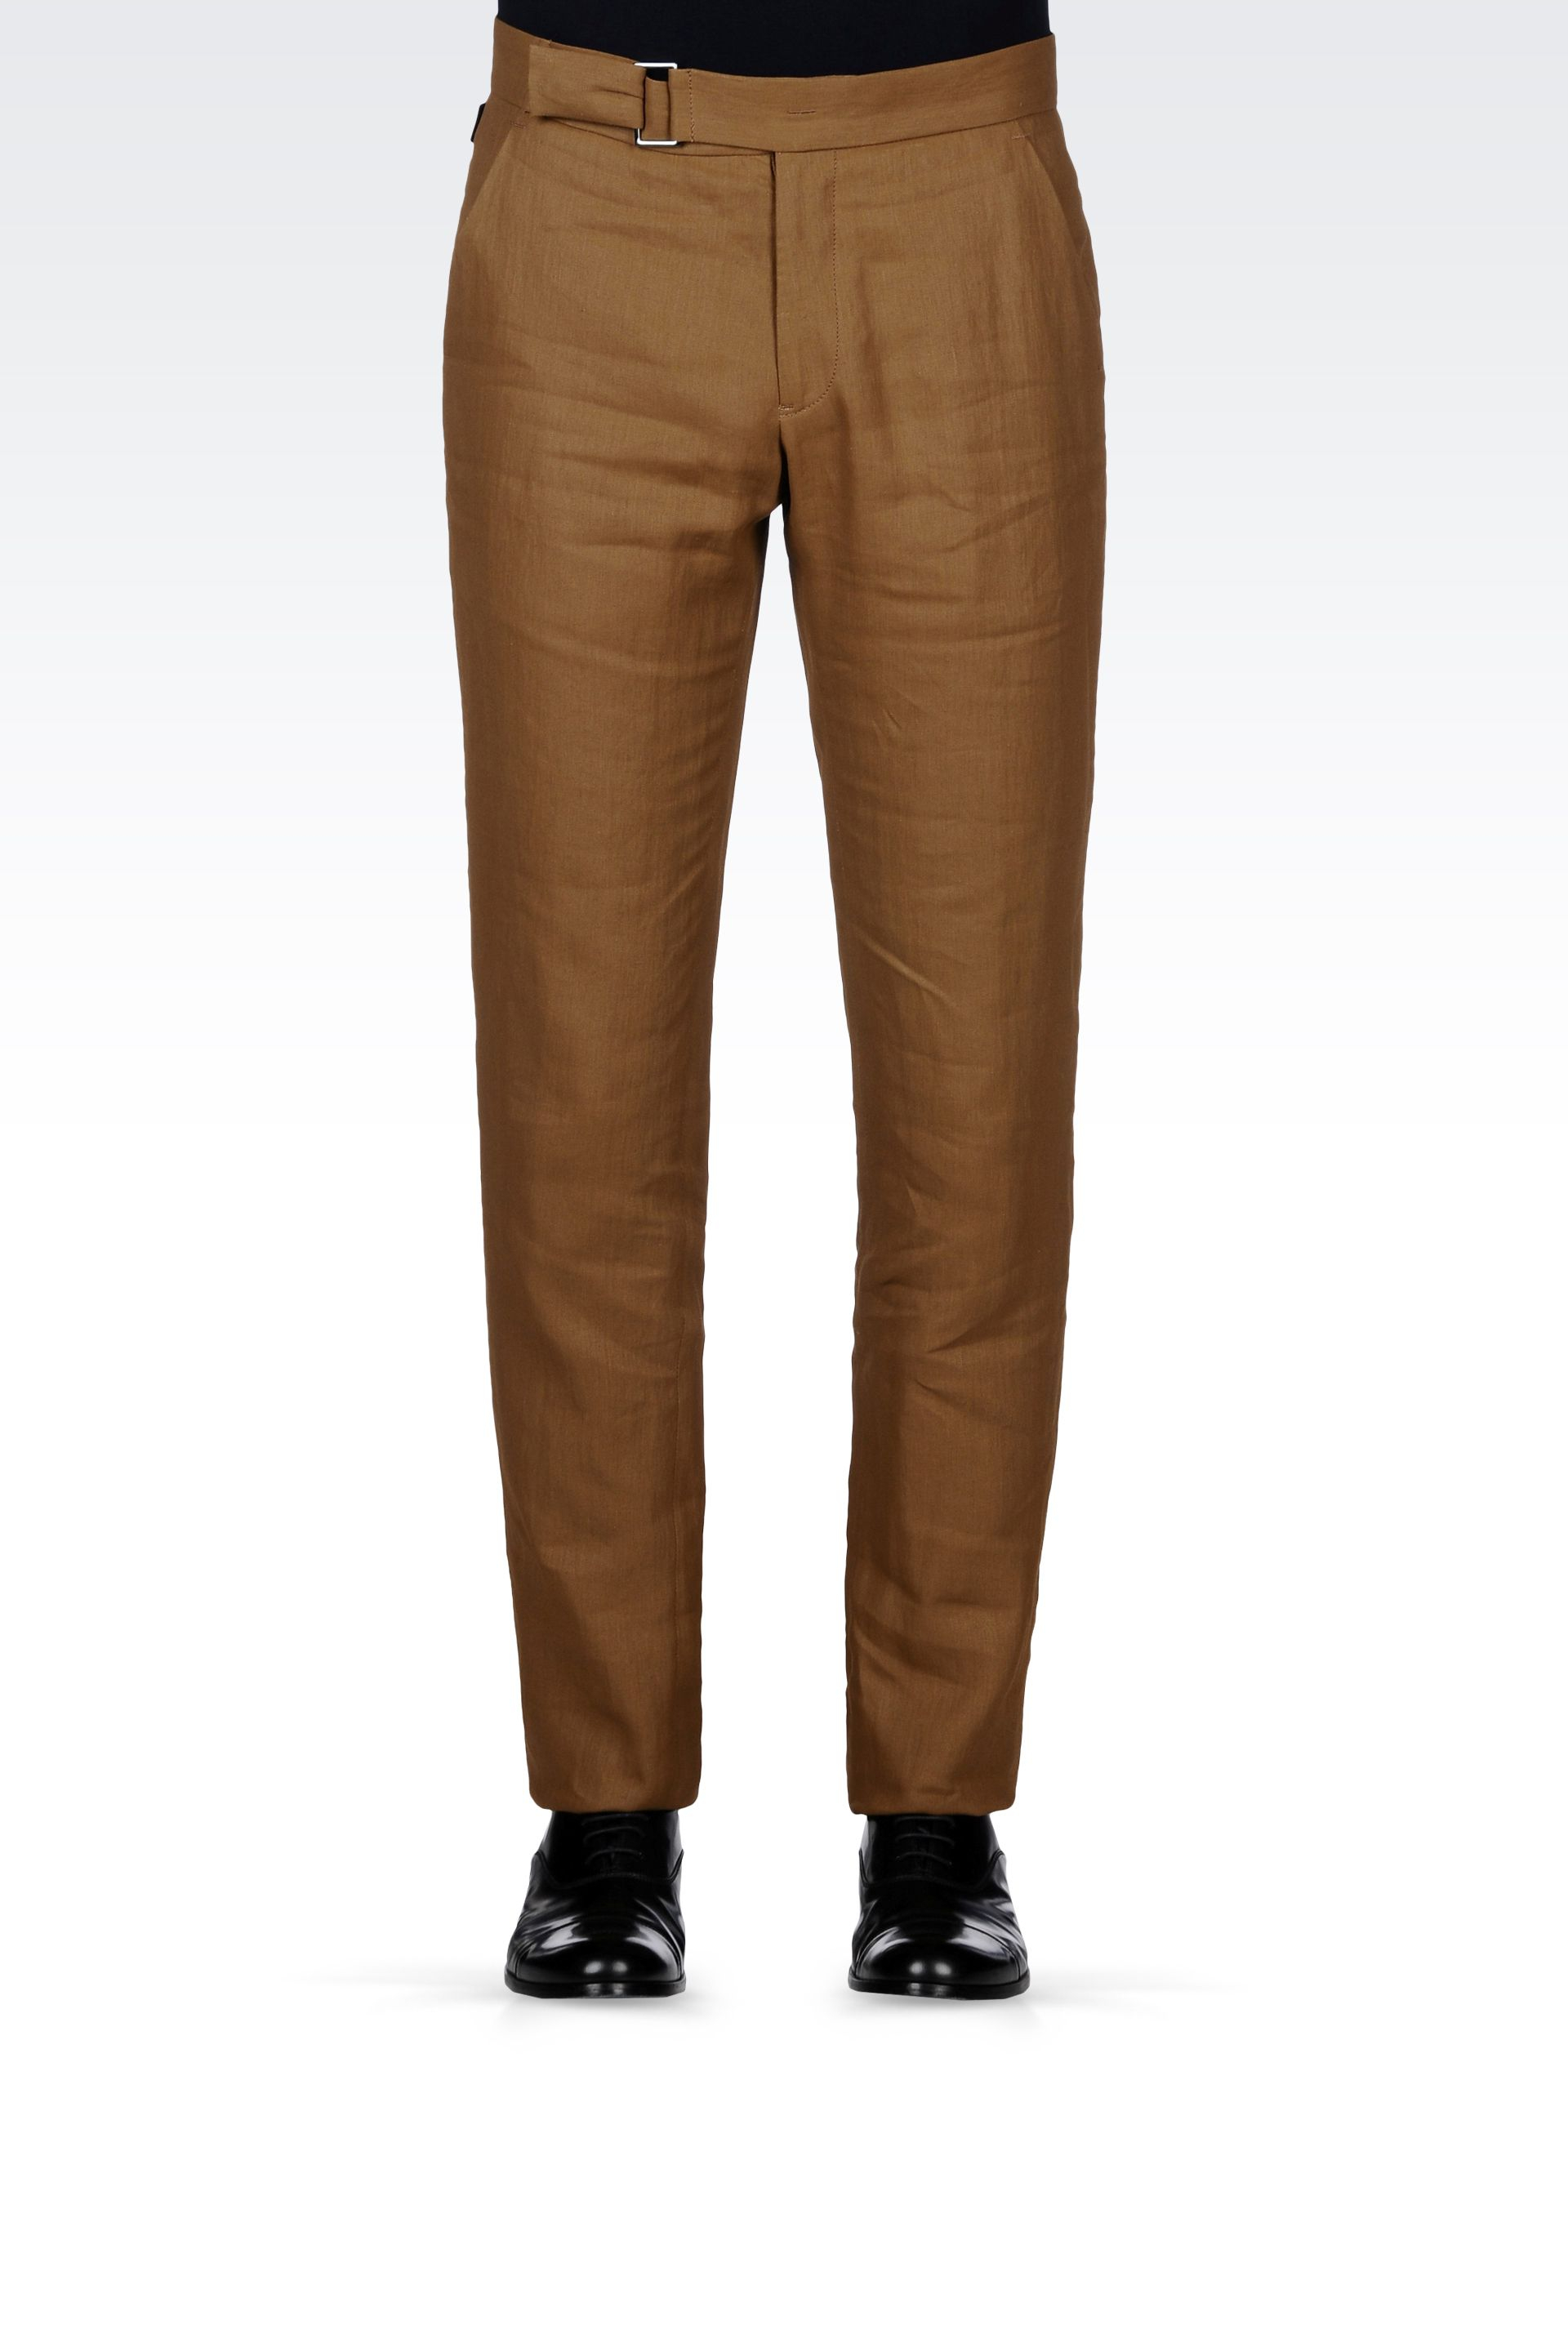 brown linen pants for men - Pi Pants